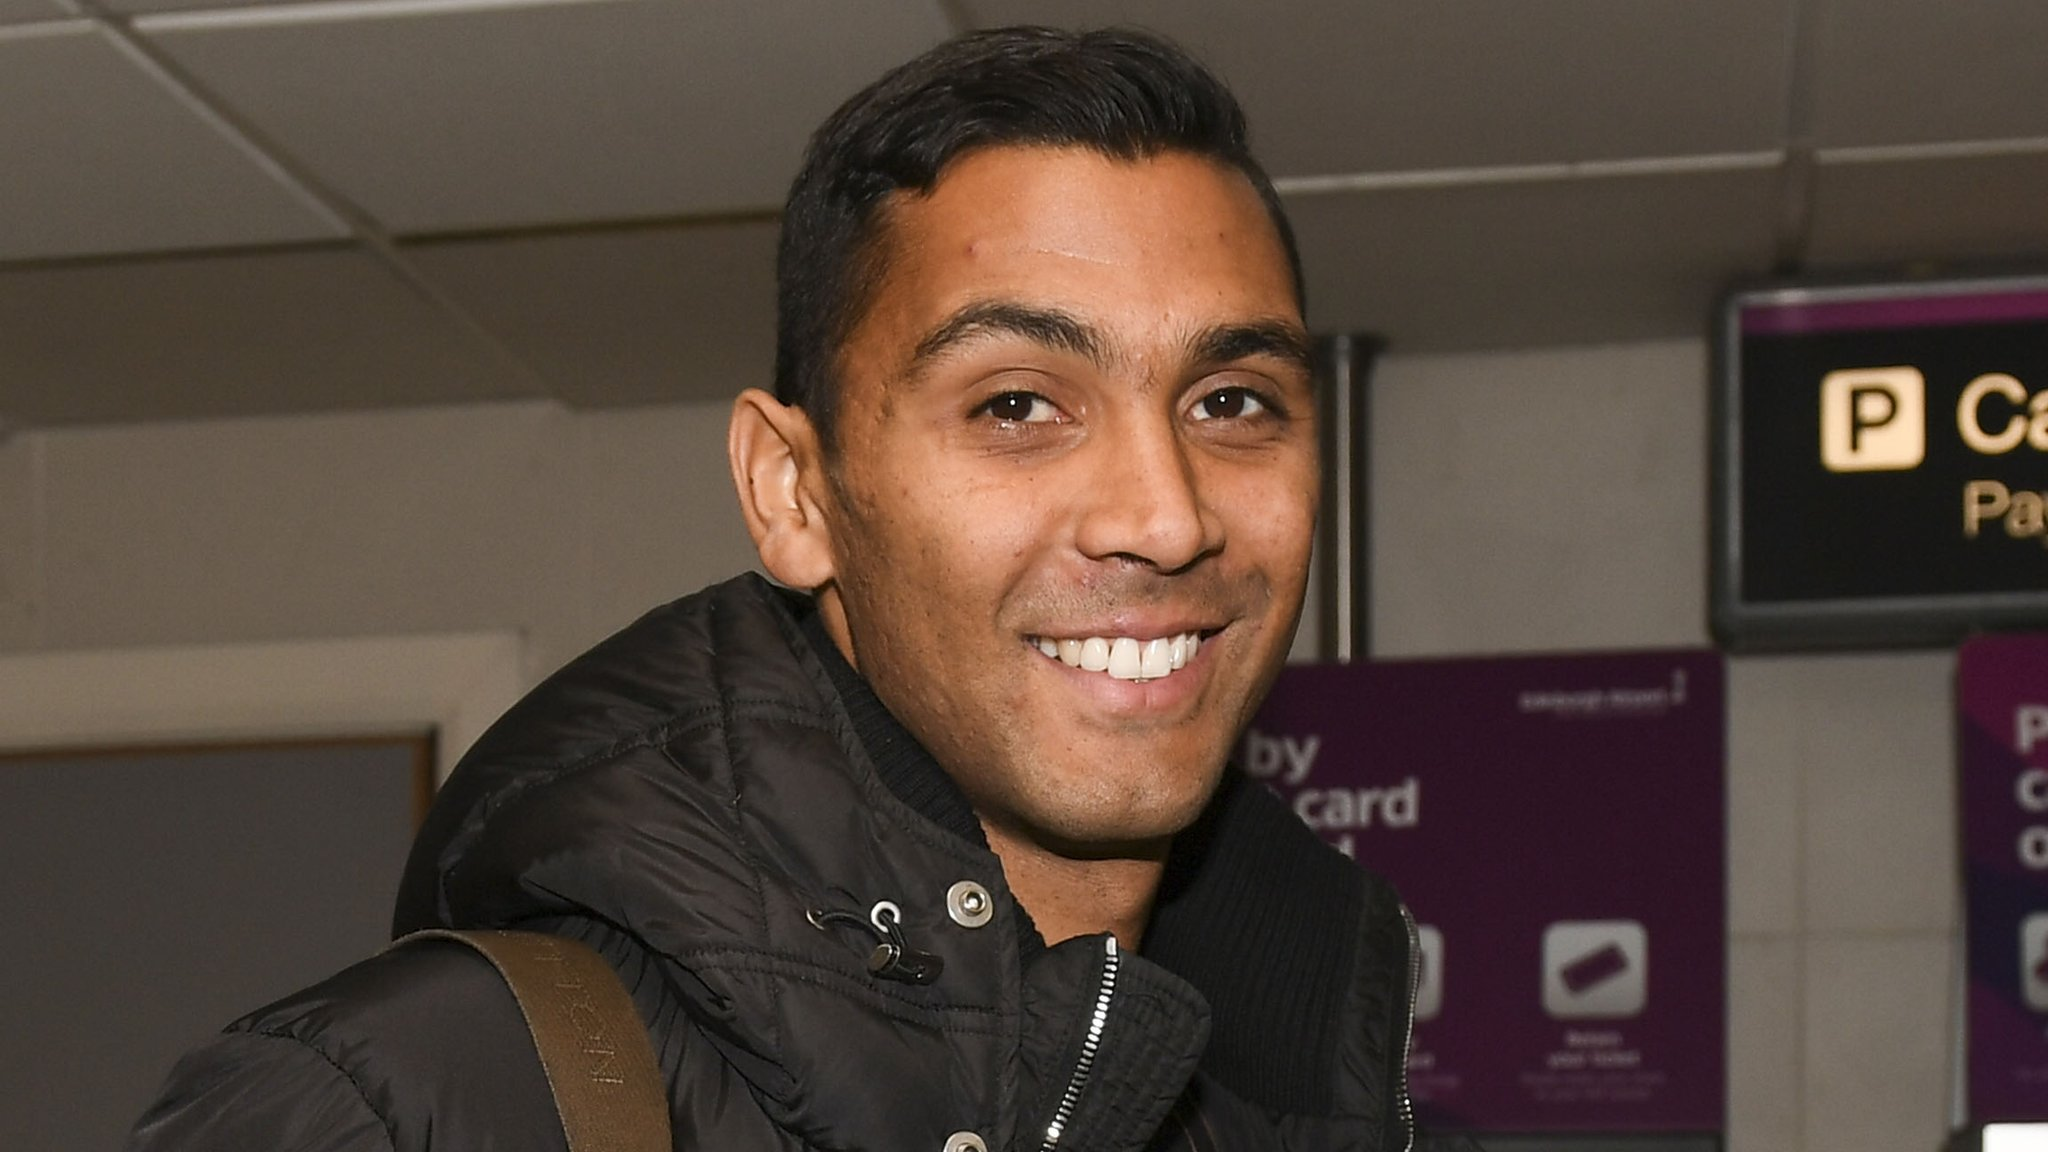 Celtic: Marvin Compper in Scotland before Leipzig switch